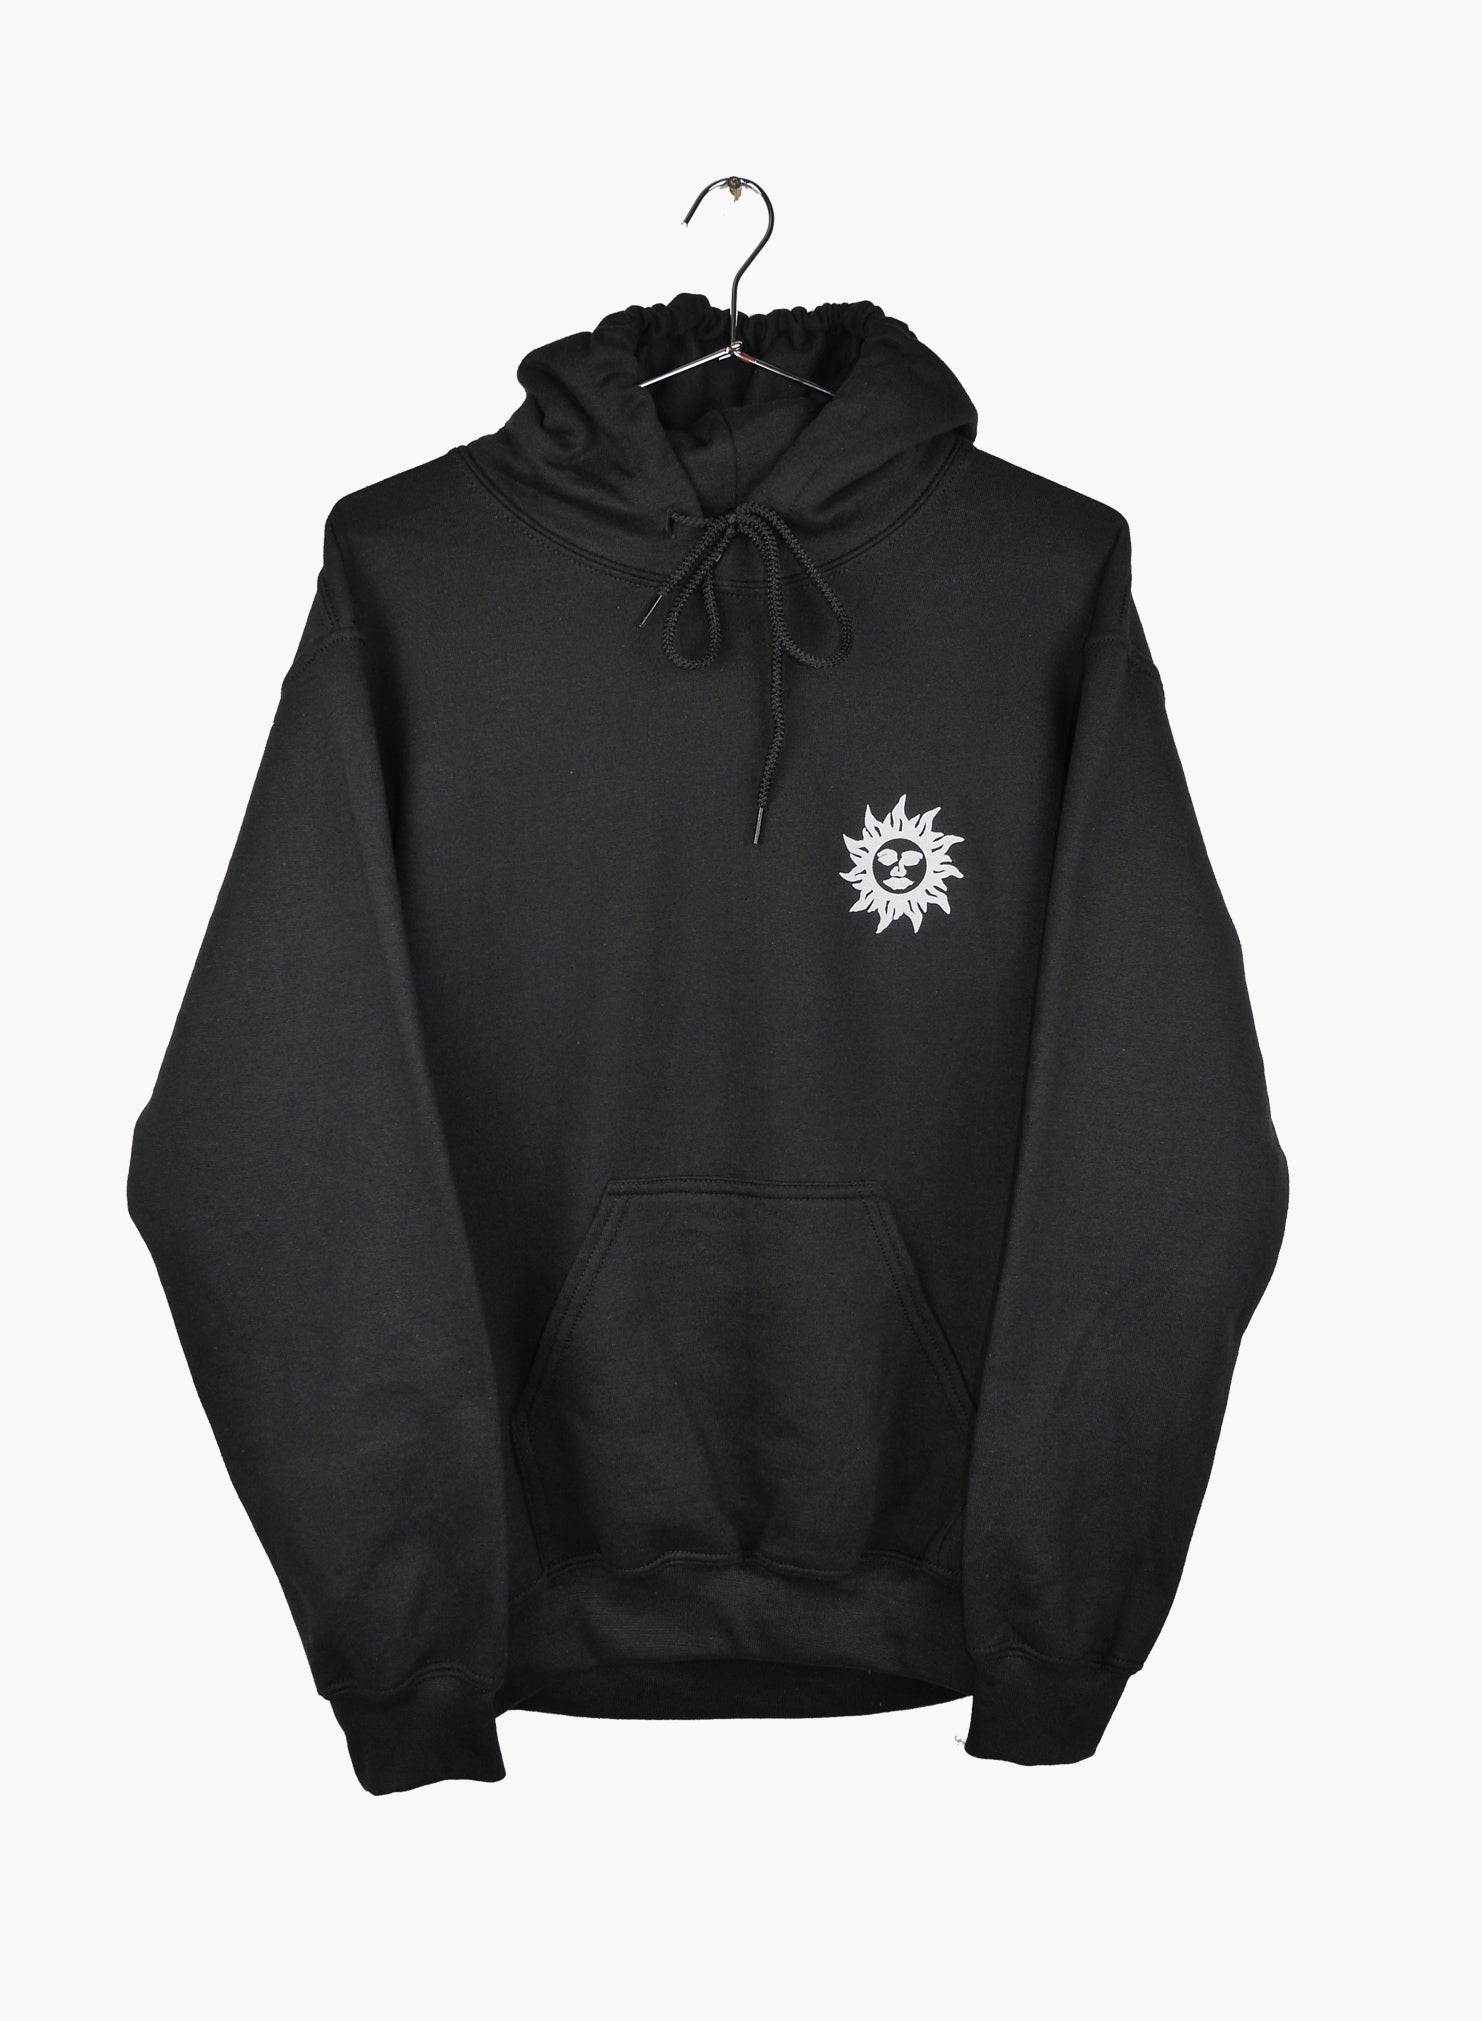 Hoodie black with sunshine makers artwork hand screen printed front and back.